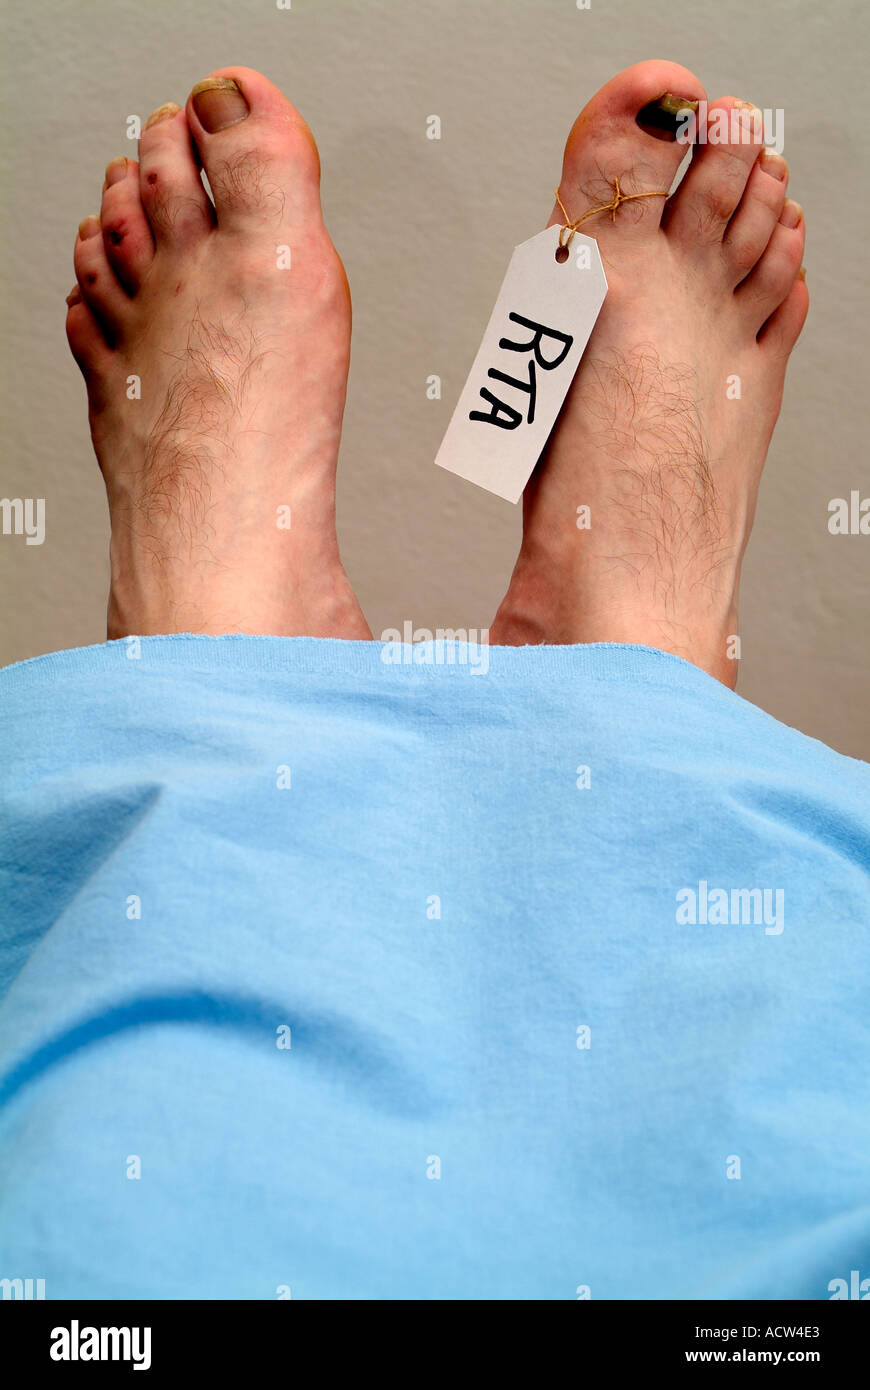 Labelled Foot of a Dead Body in a Mortuary After a Fatal Car Crash - Stock Image